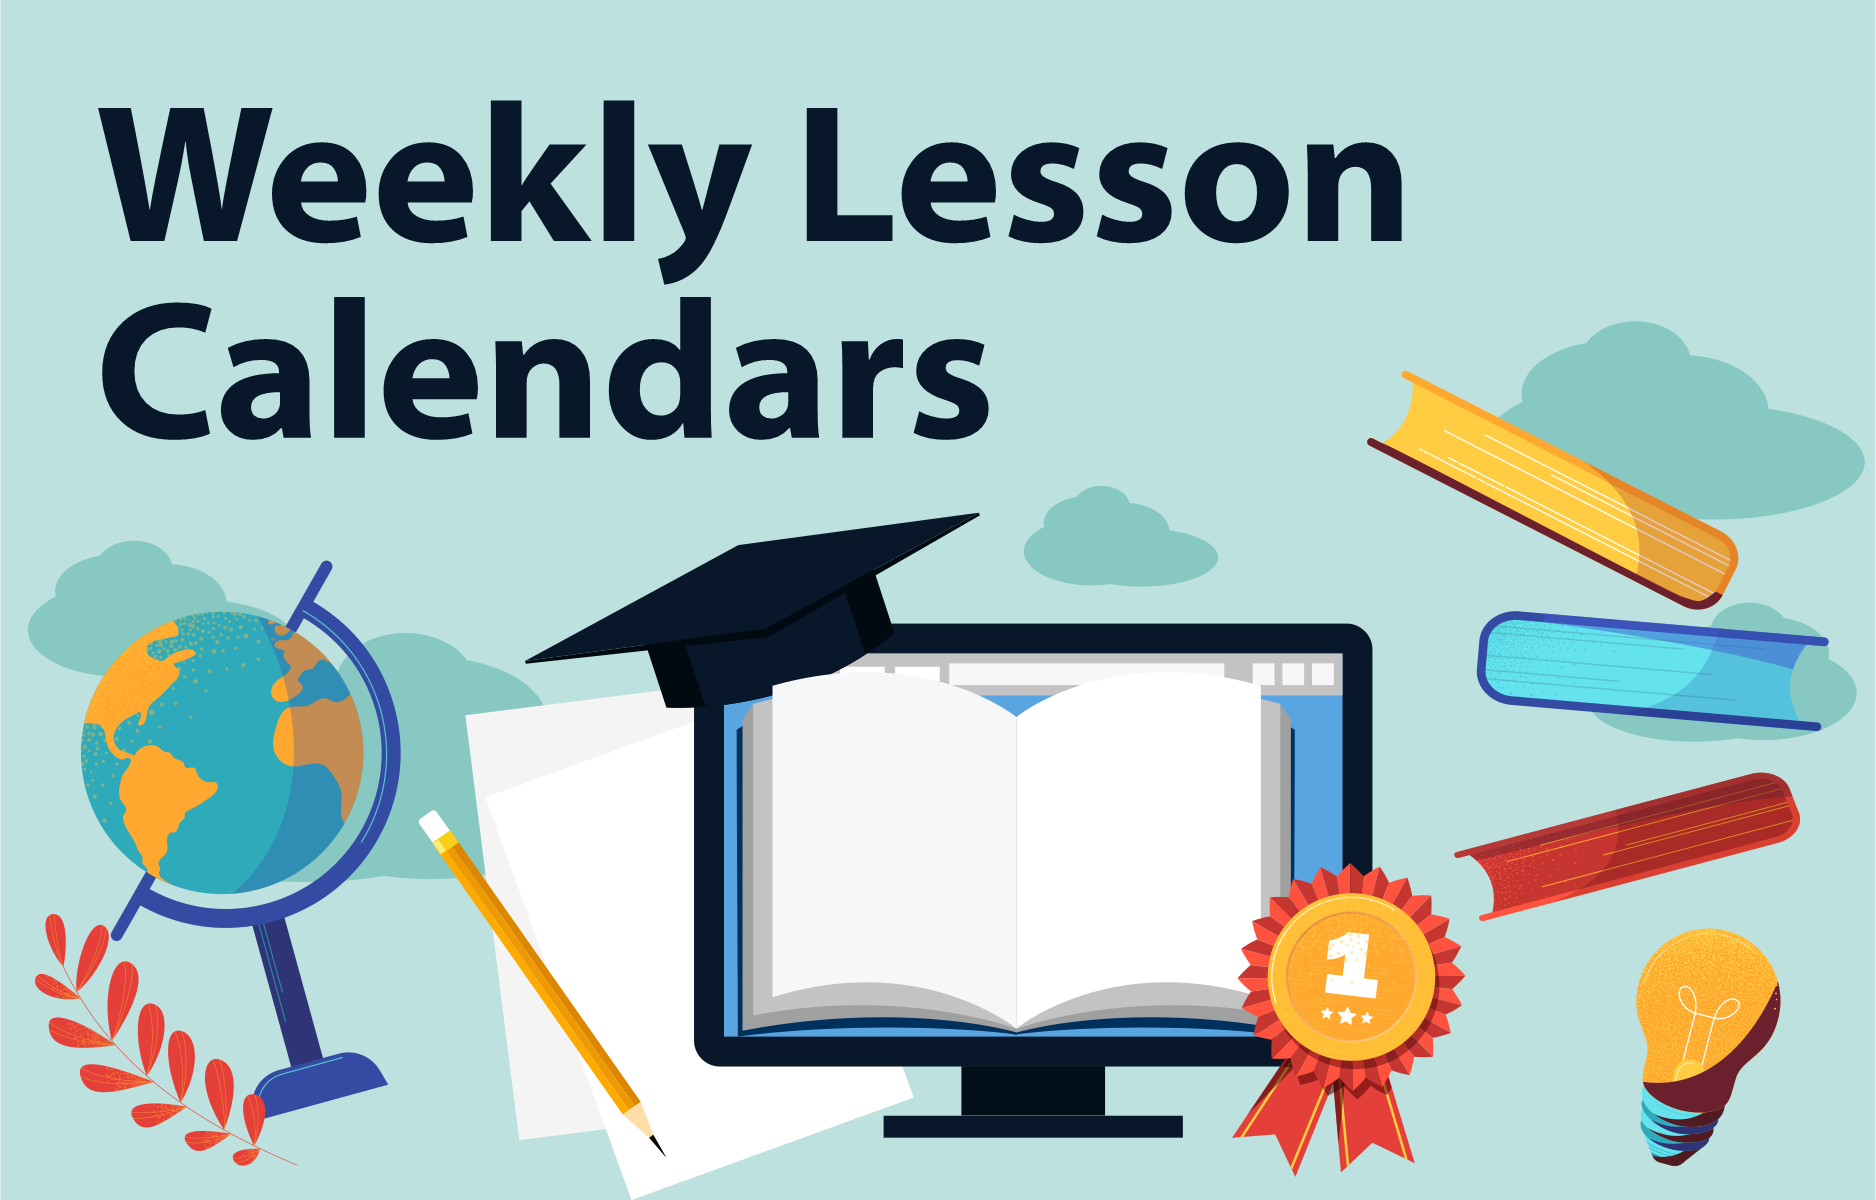 Weekly Lesson Calendars